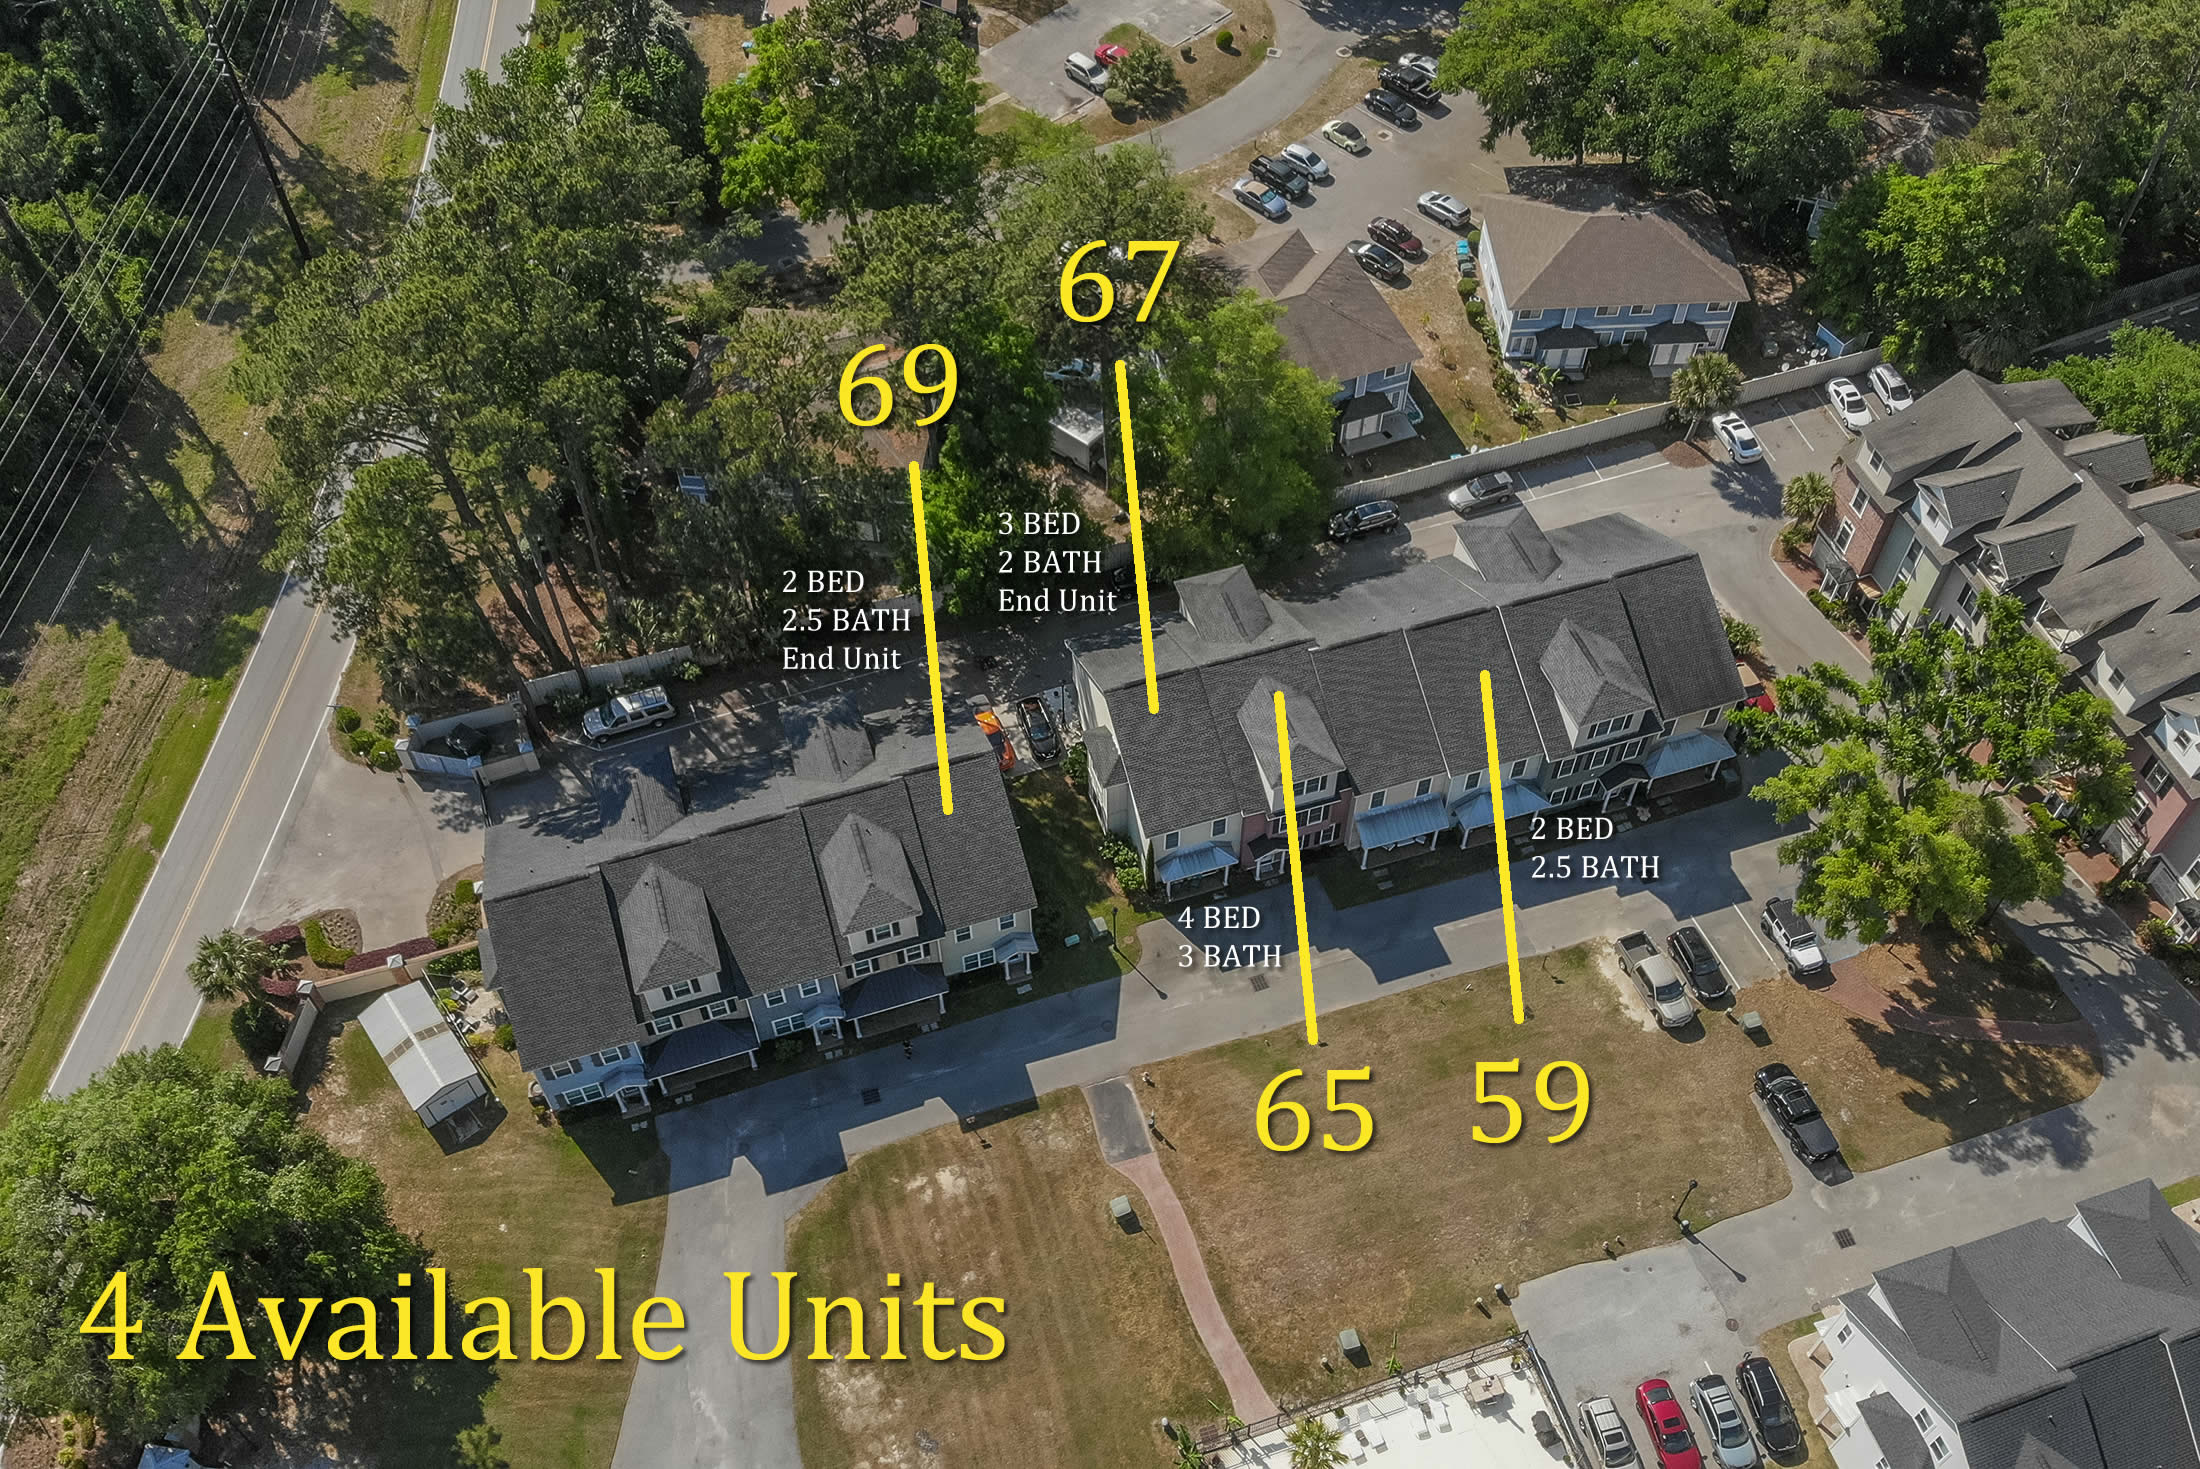 Available Units in The Village at Battery Creek